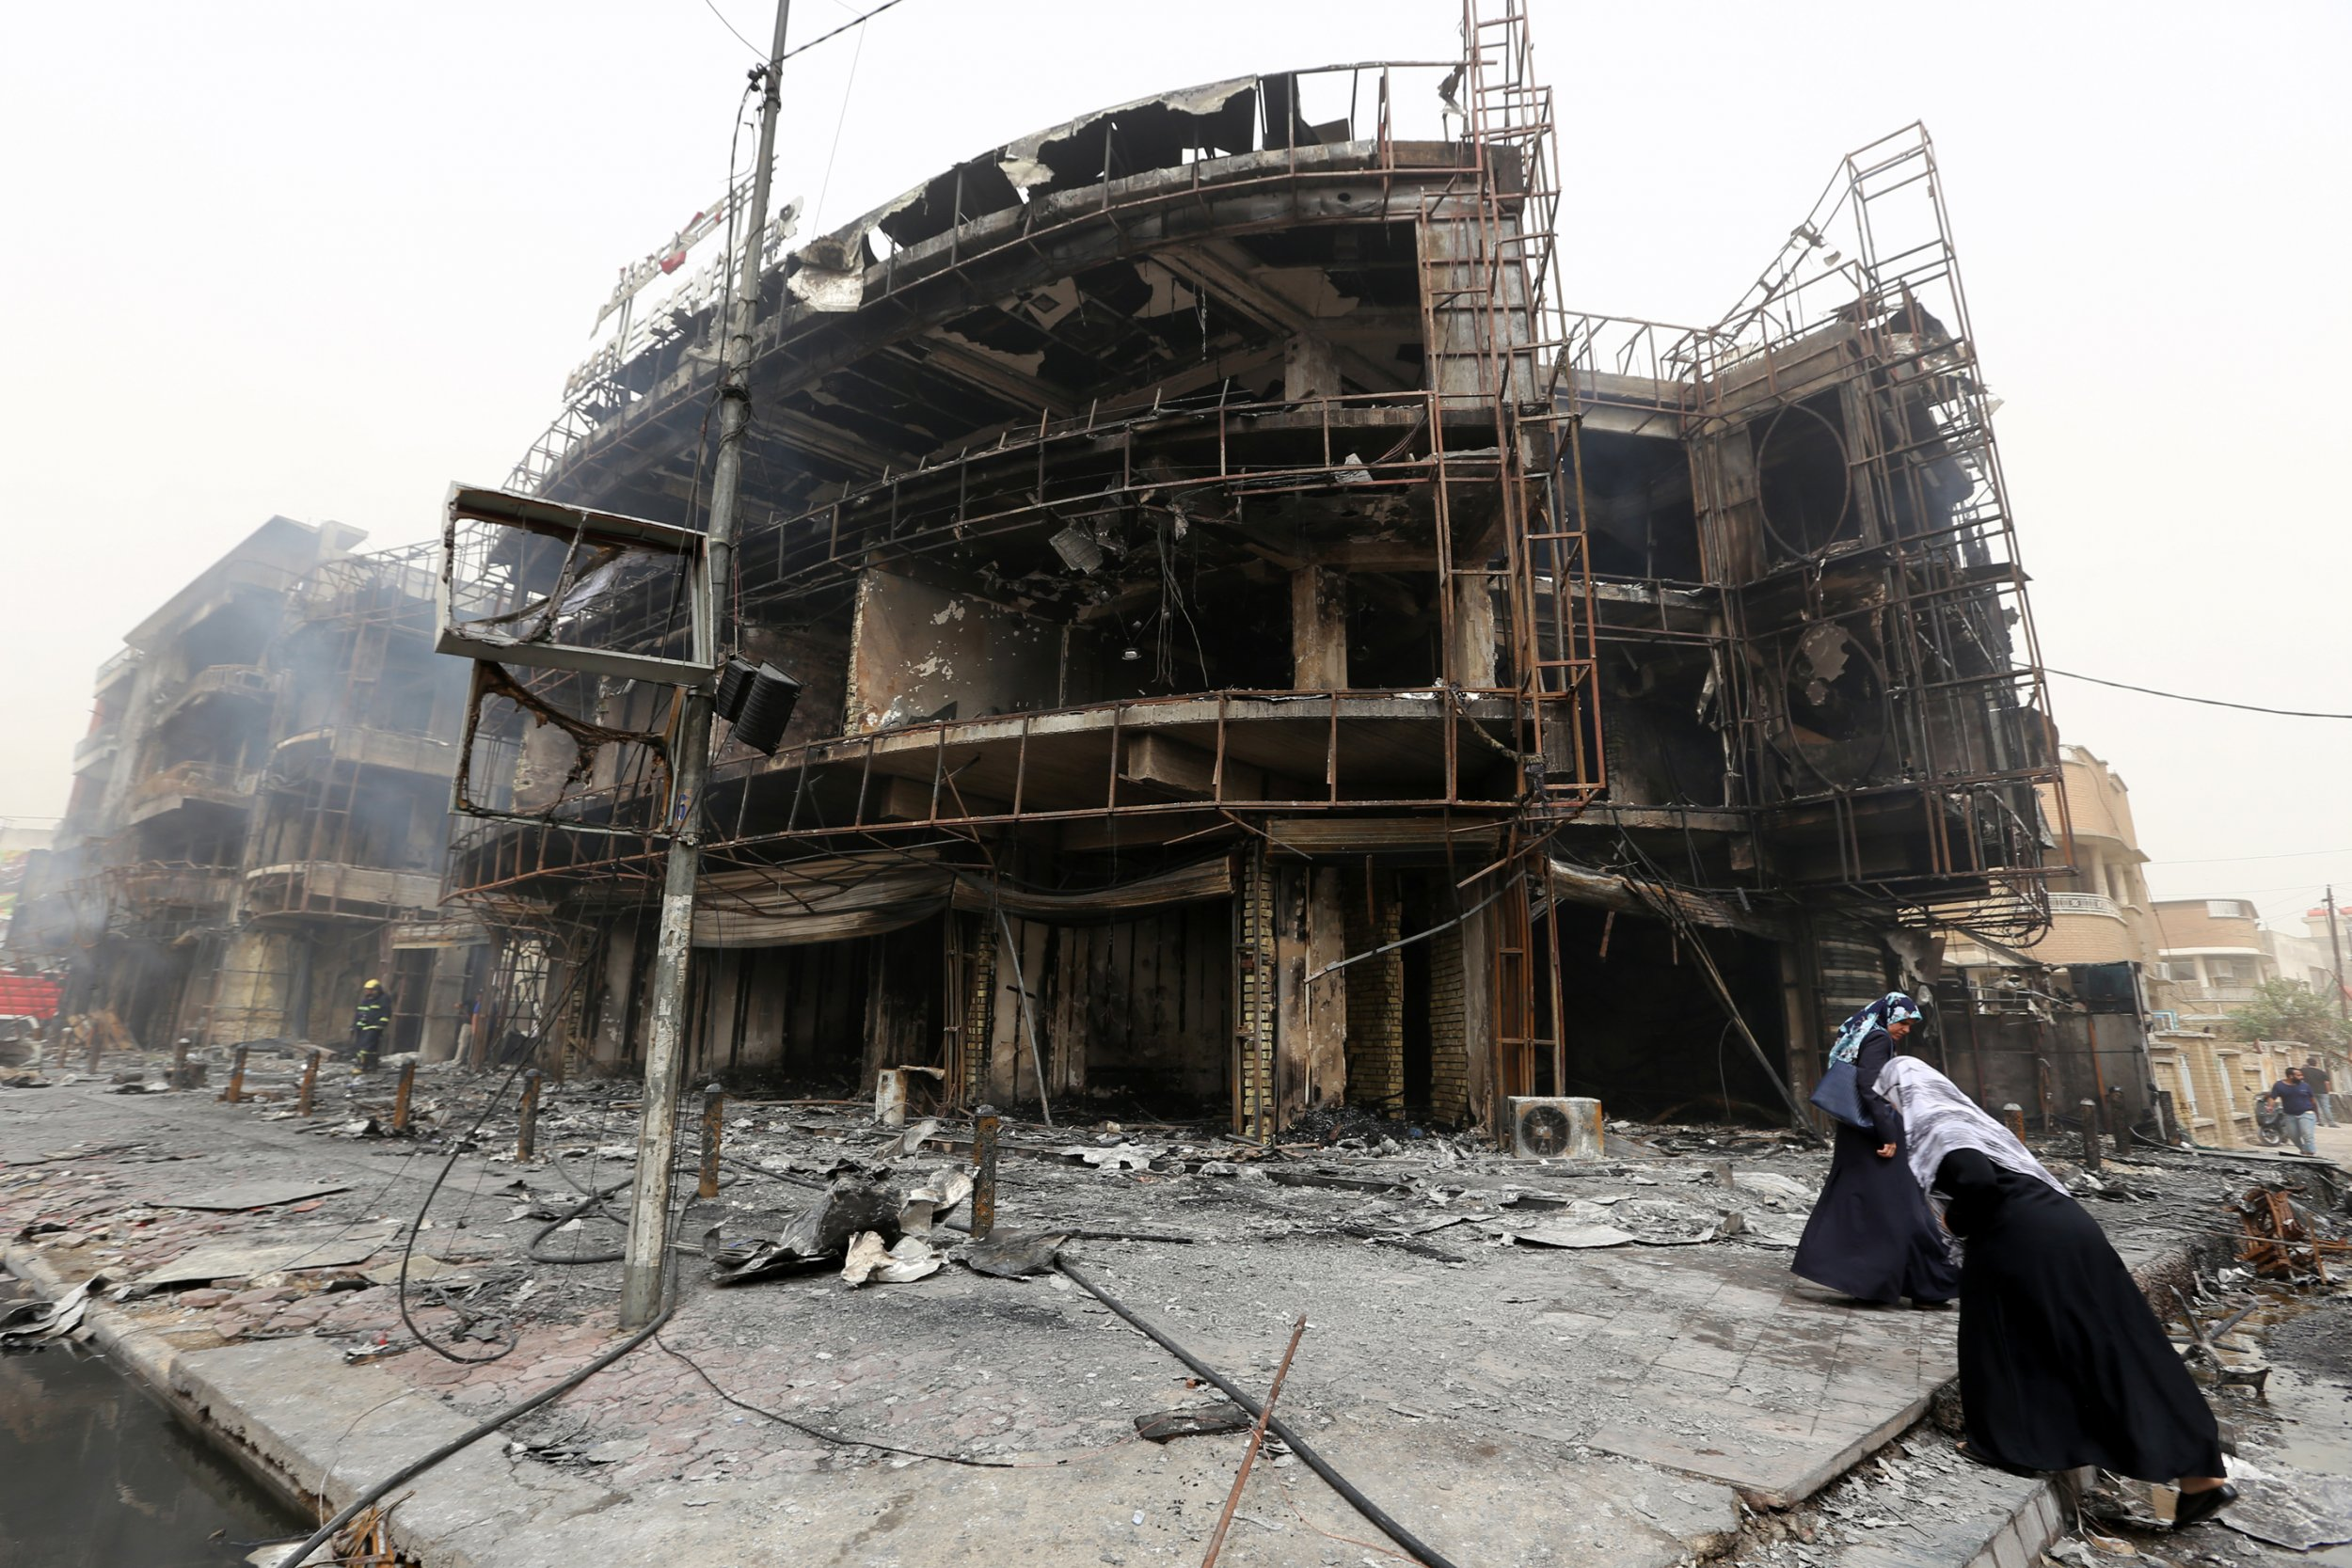 ISIS Attack on Baghdad, Iraq